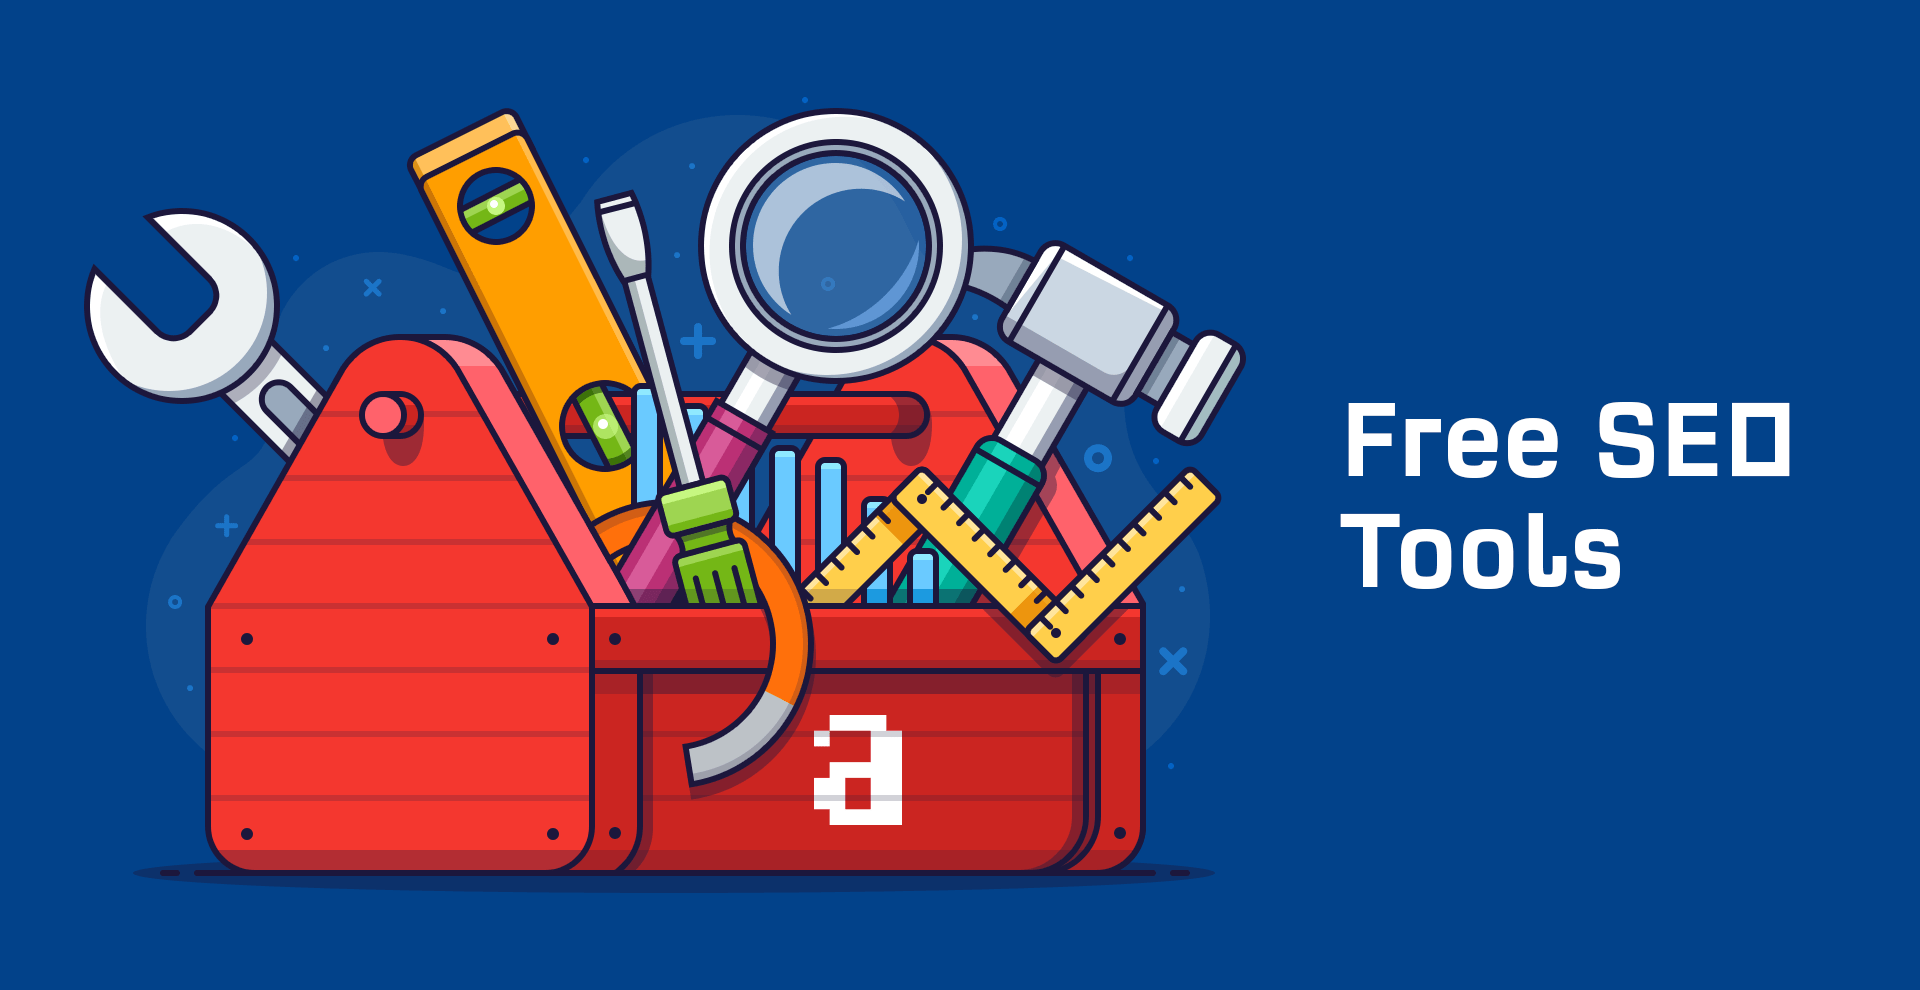 What is Free SEO Tool?